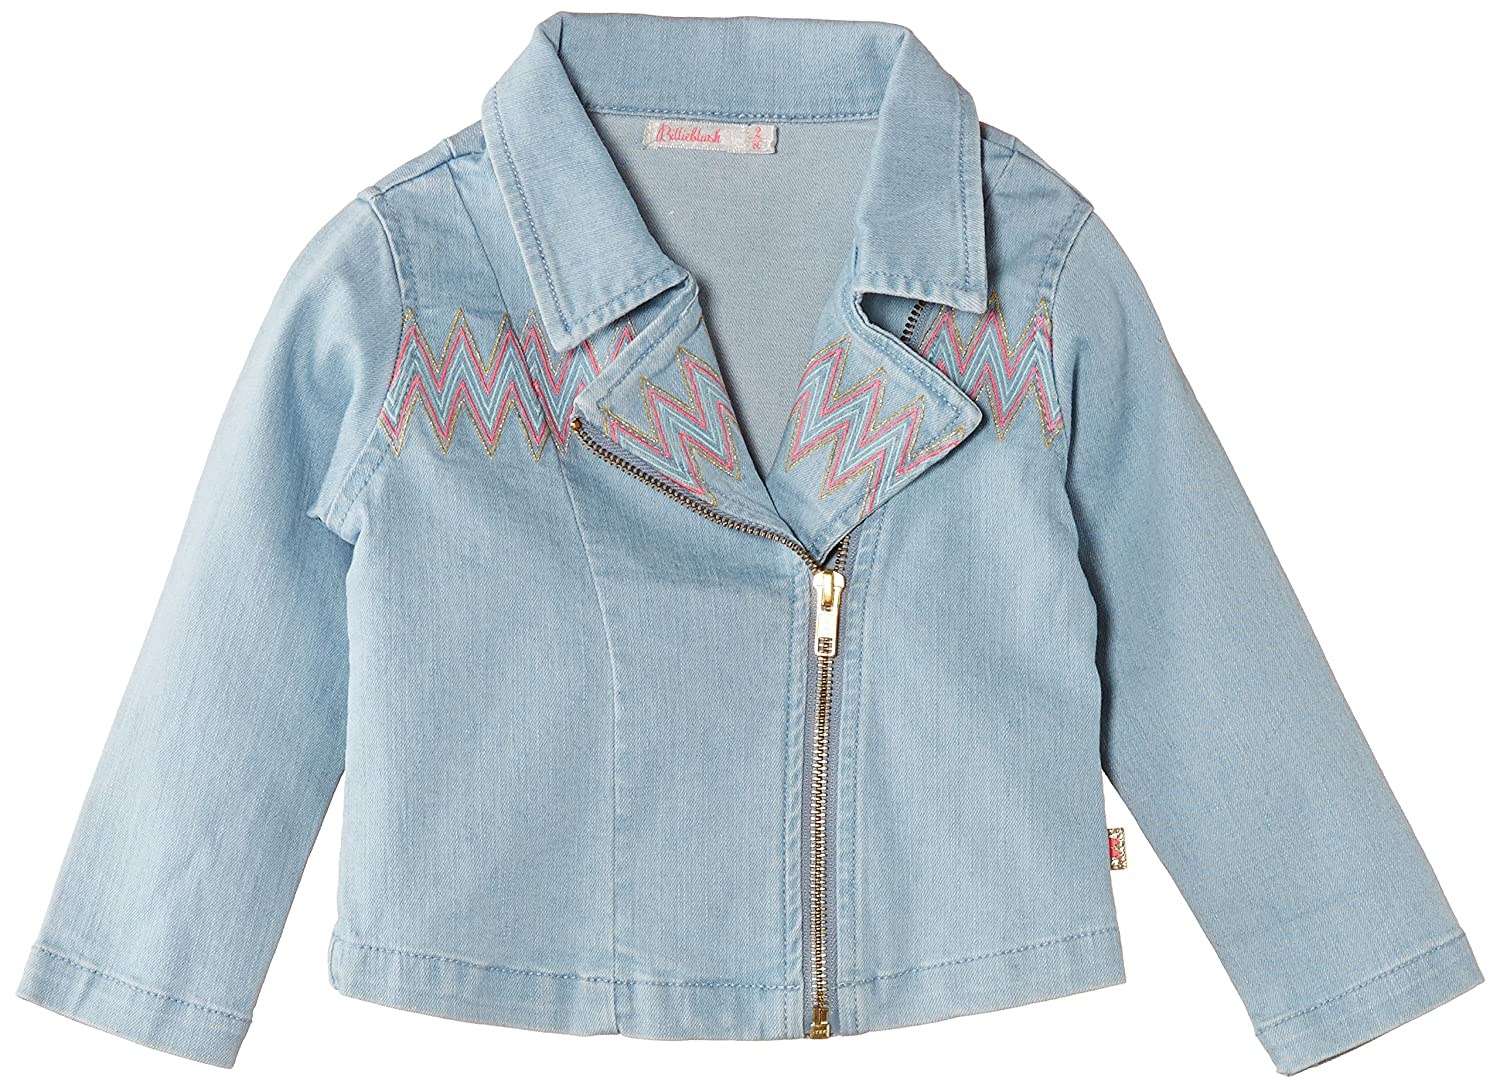 dcfb012faa Billieblush Girl s Denim Jacket